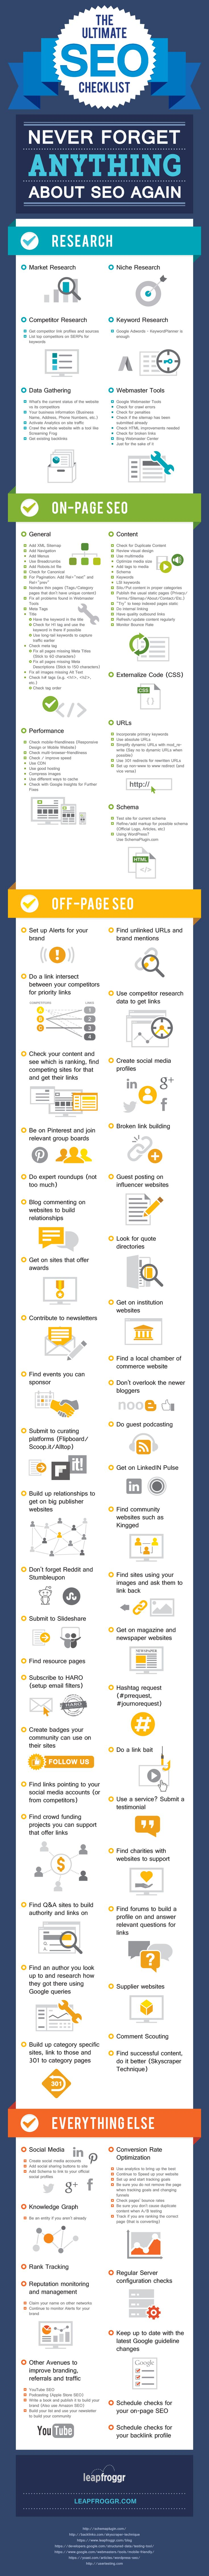 Follow this ultimate SEO checklist and you'll never be confused about website promotion and optimization again. Let Raven's research tools get you started.